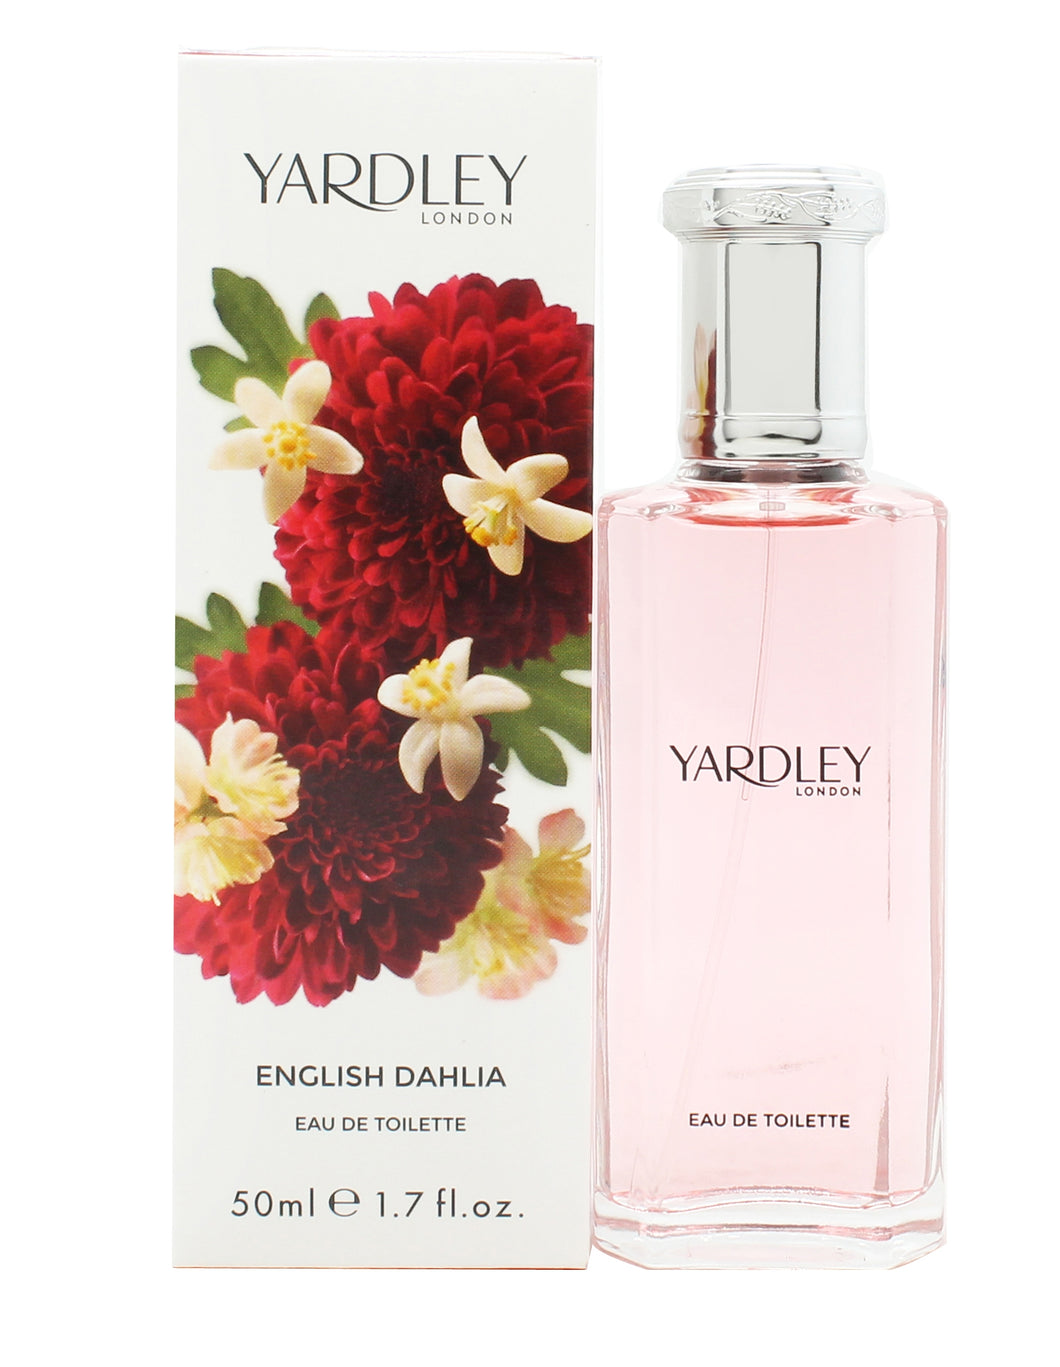 Yardley English Dahlia Eau de Toilette 50ml Spray